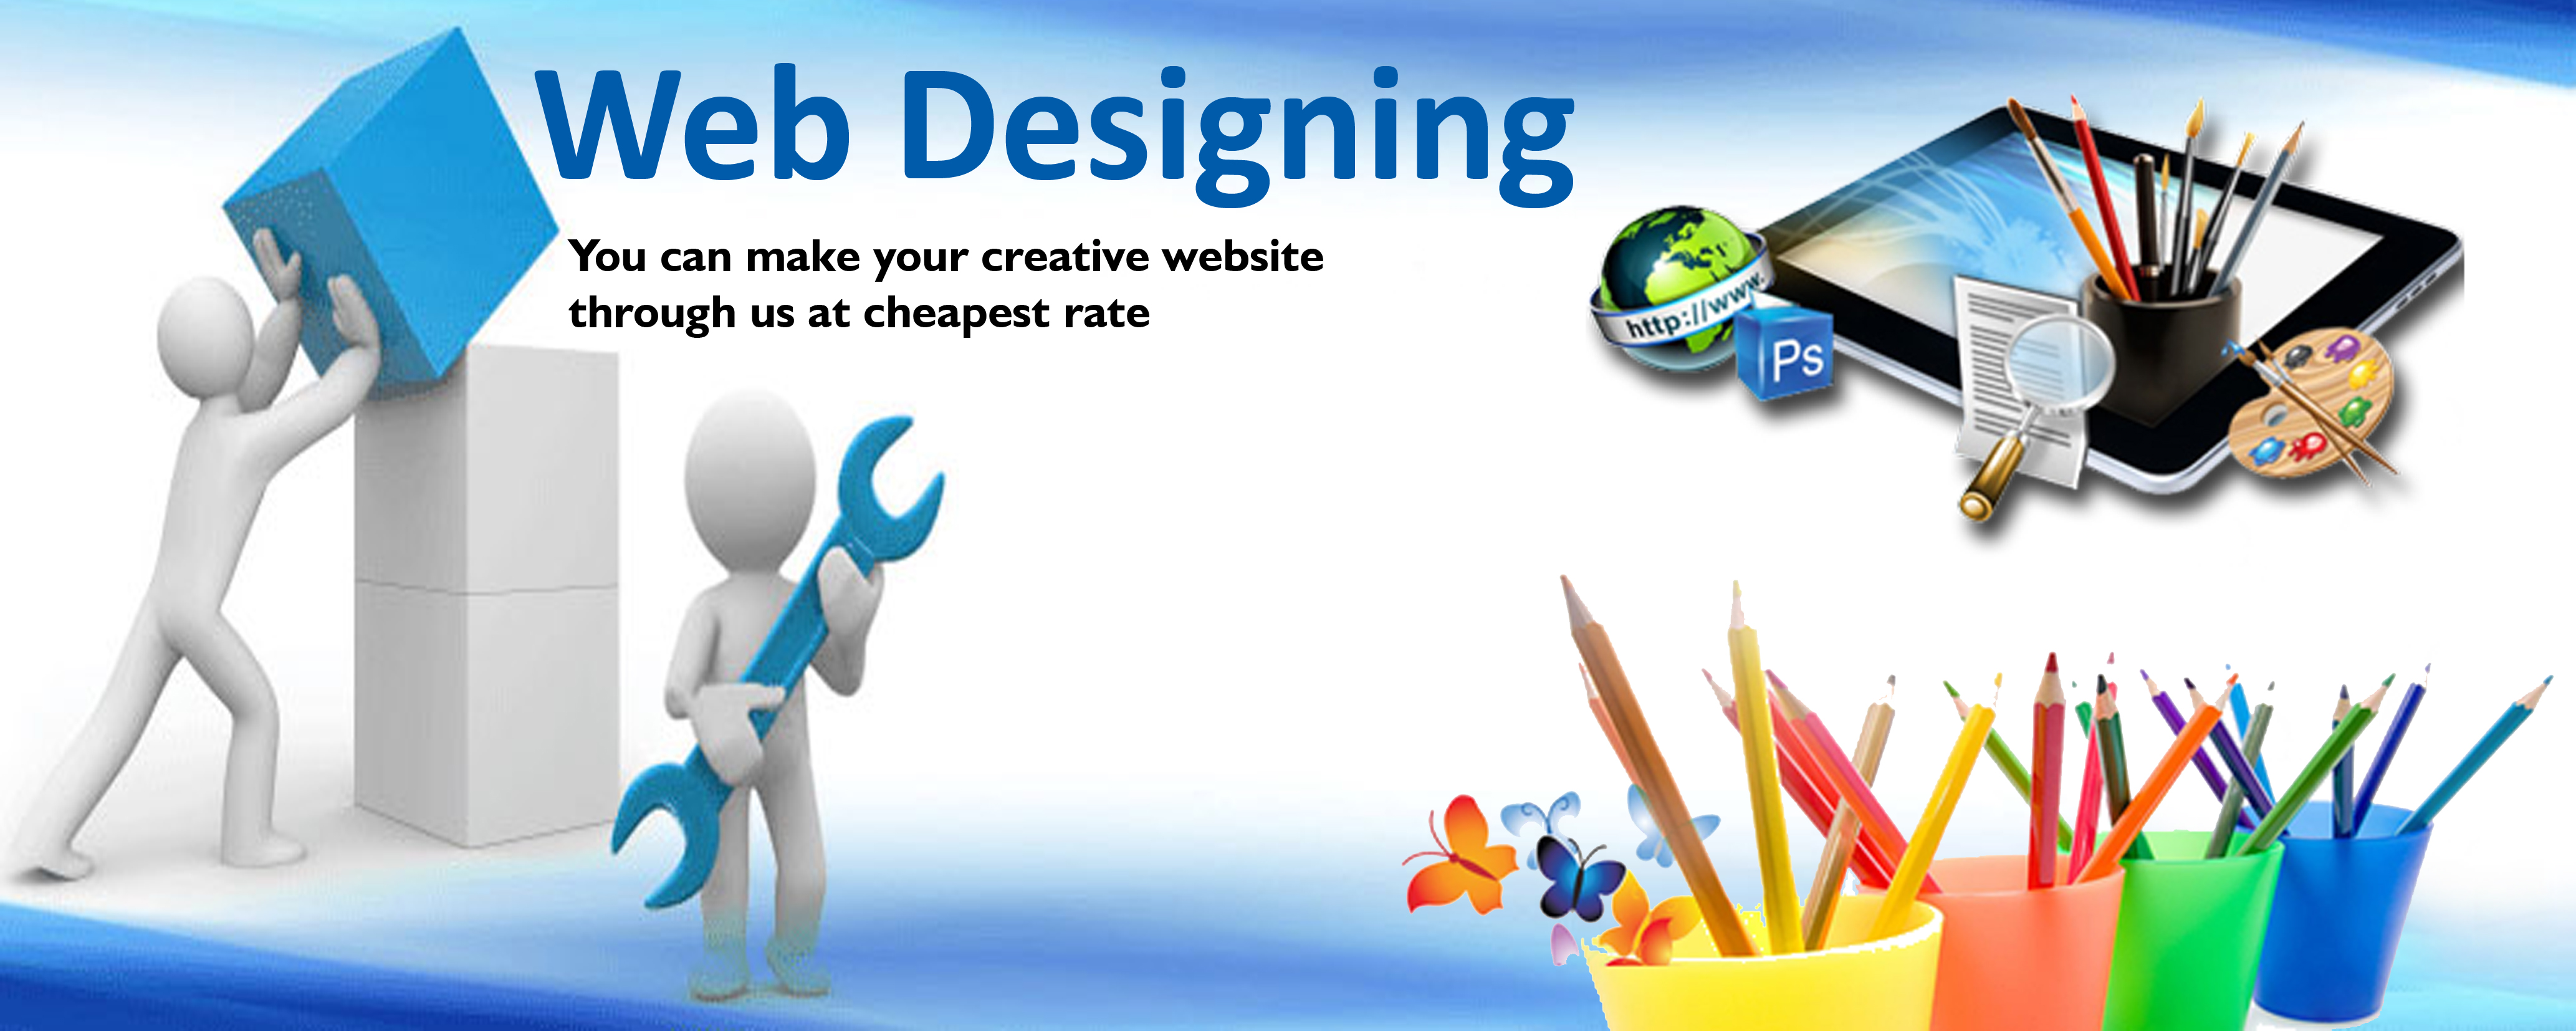 website design and hosting companies